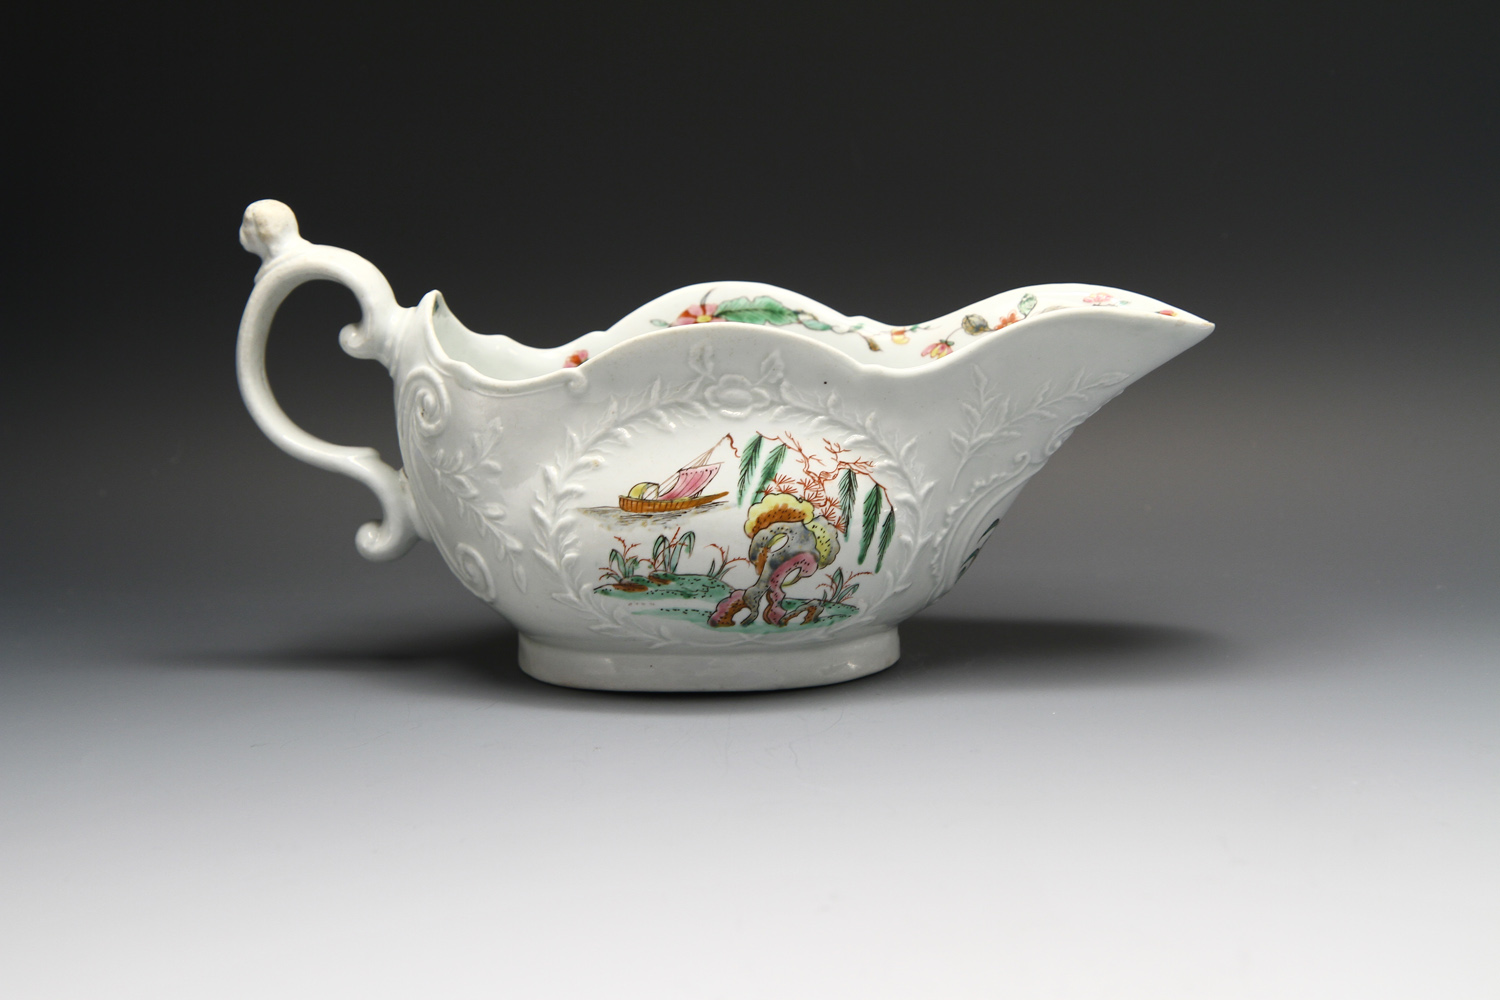 1105 - A fine Worcester sauceboat with dog's head handle, c 1753-4